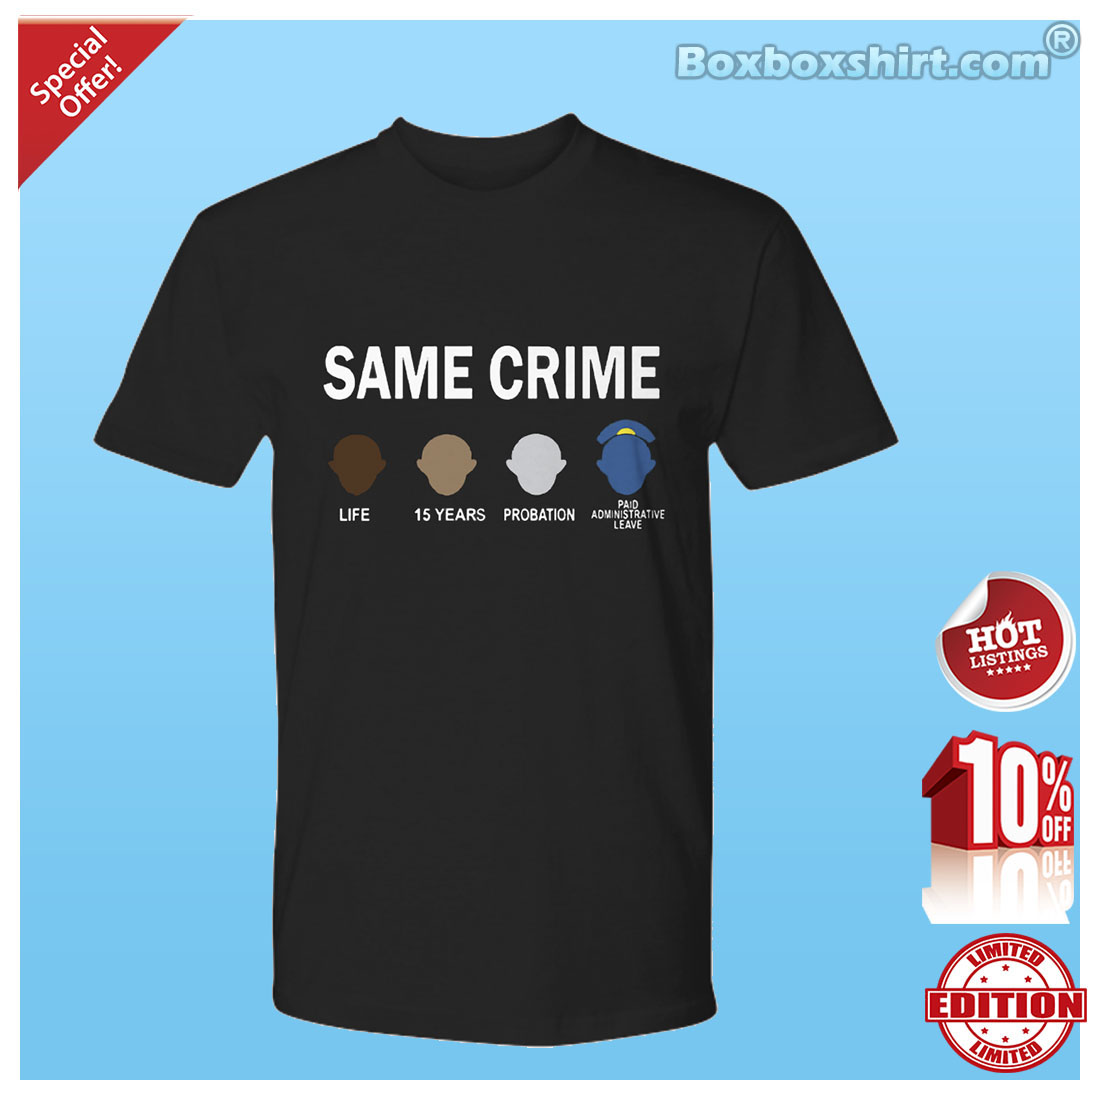 Same crime life 15 years probation shirt